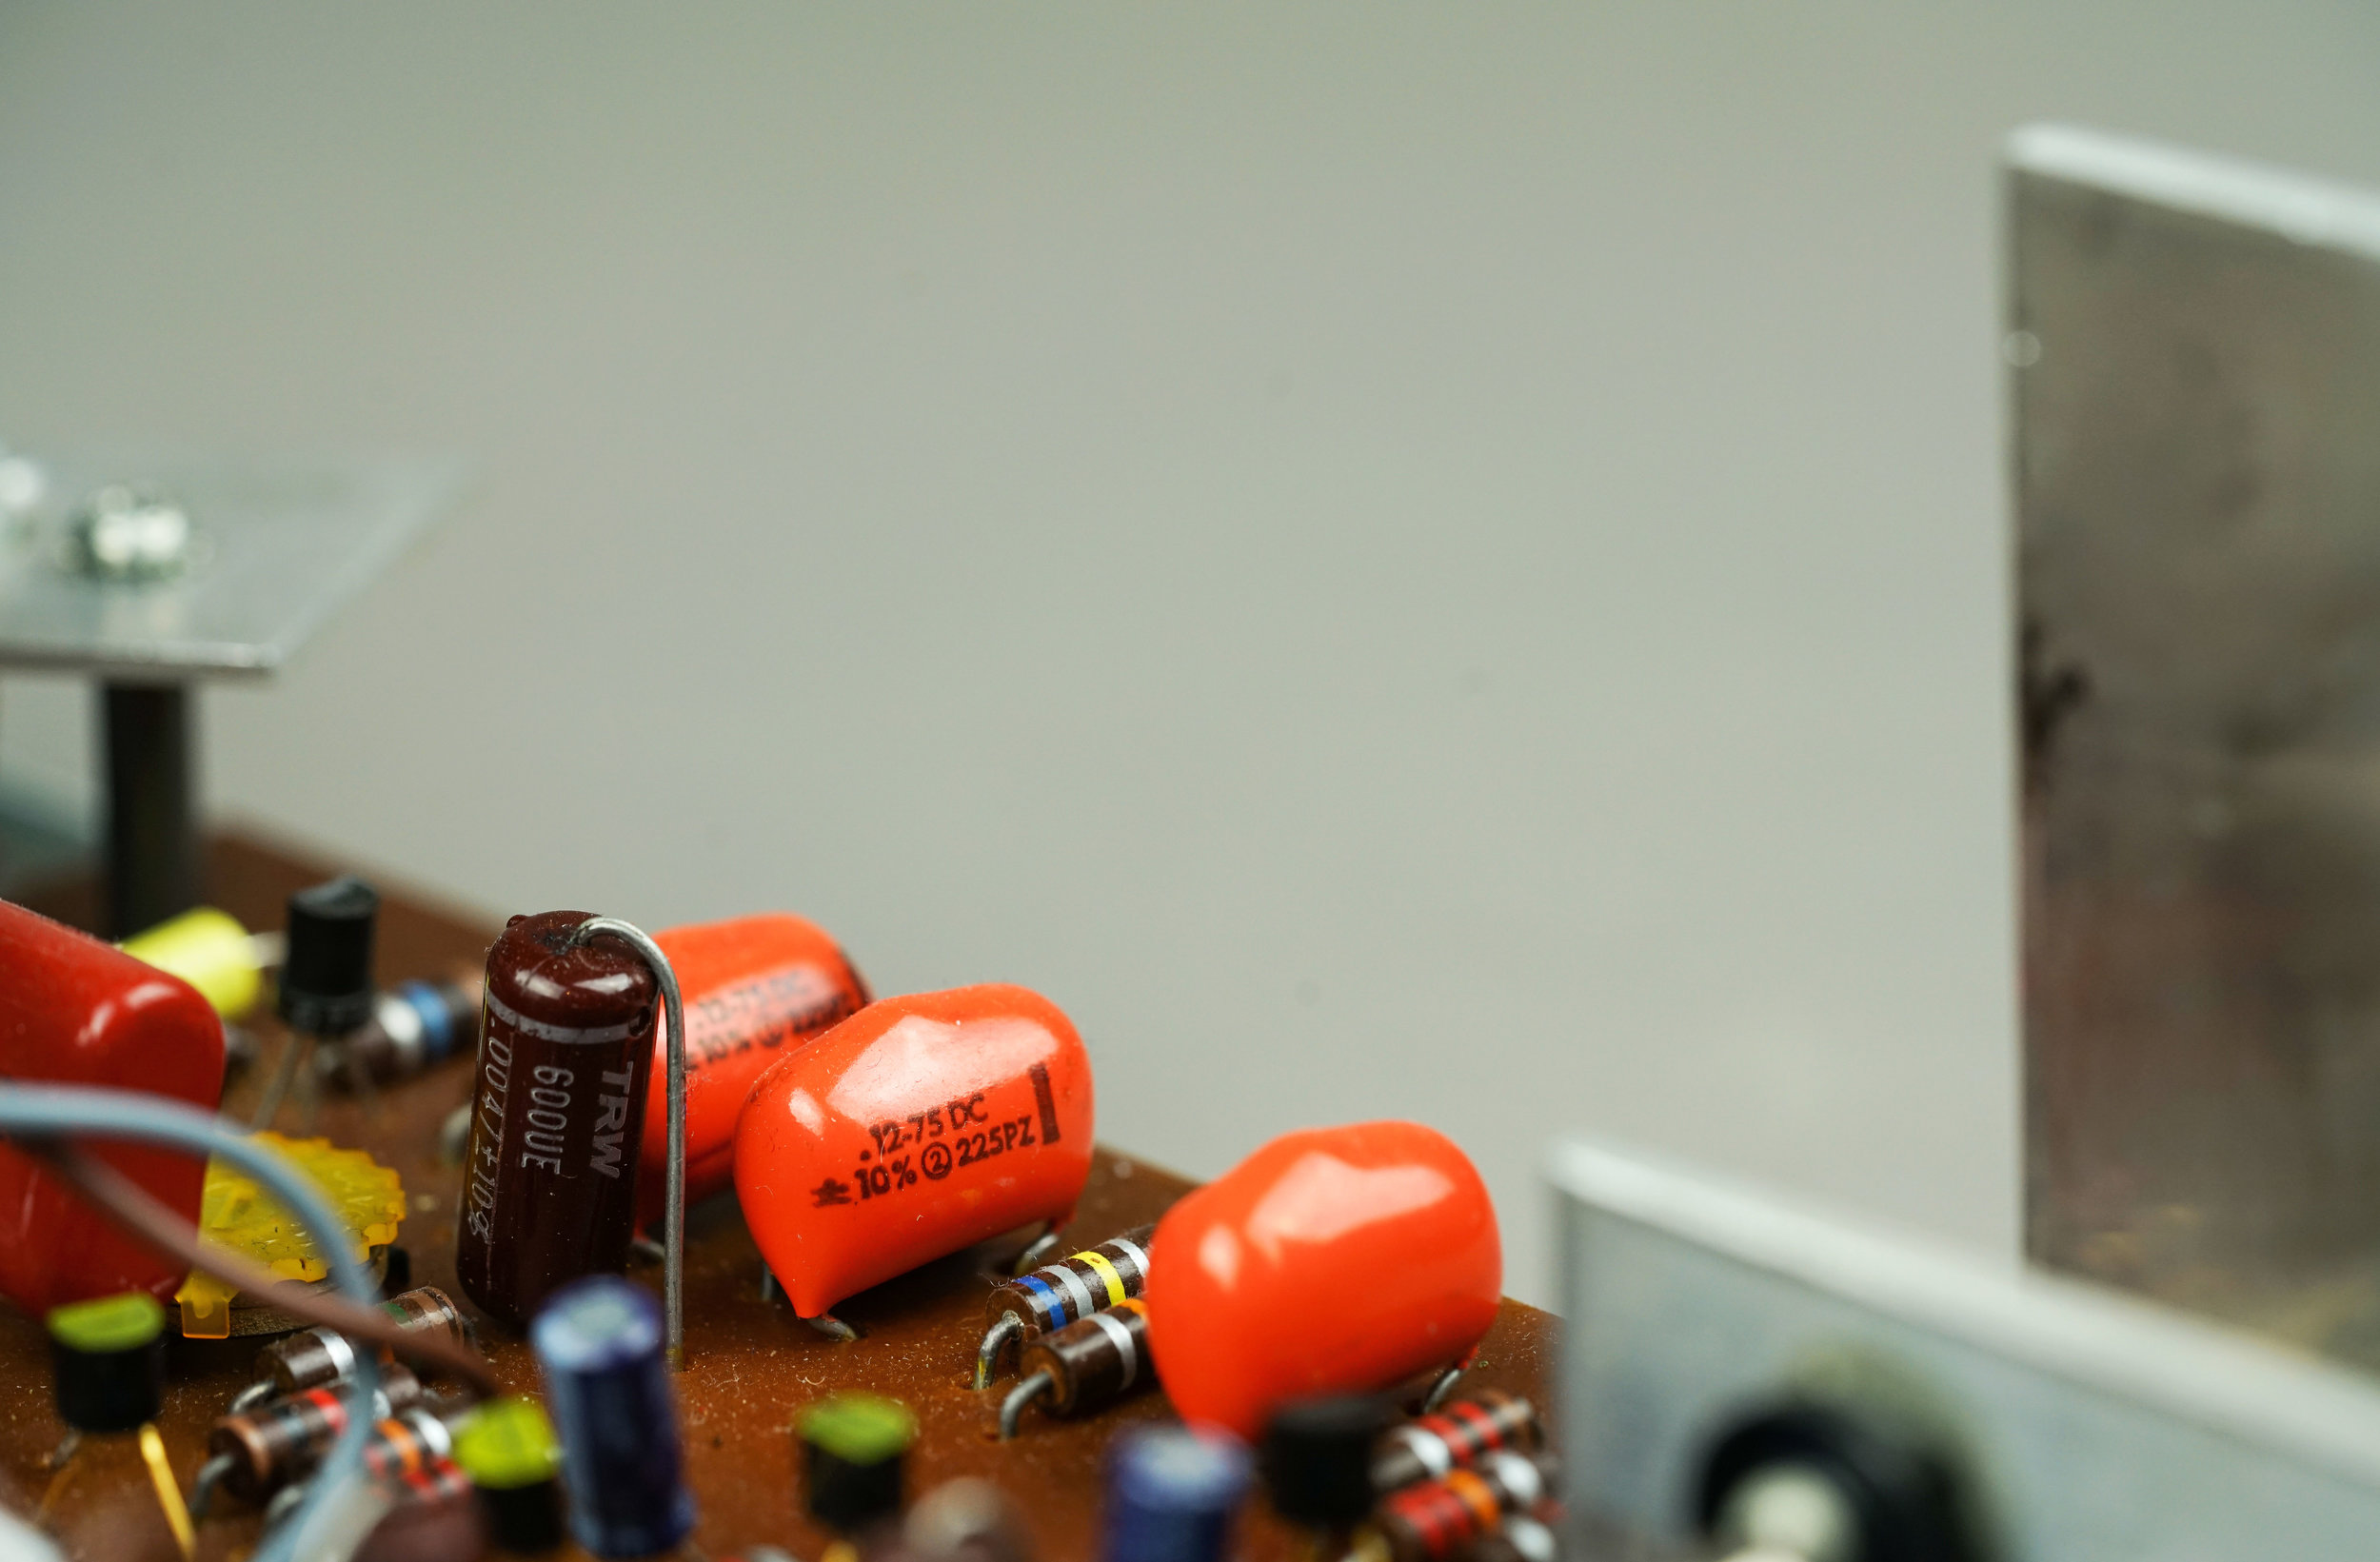 The orange capacitors are the tremolo capacitors in a Wurlitzer 200. They provide the phase shift that allows the circuit to oscillate.